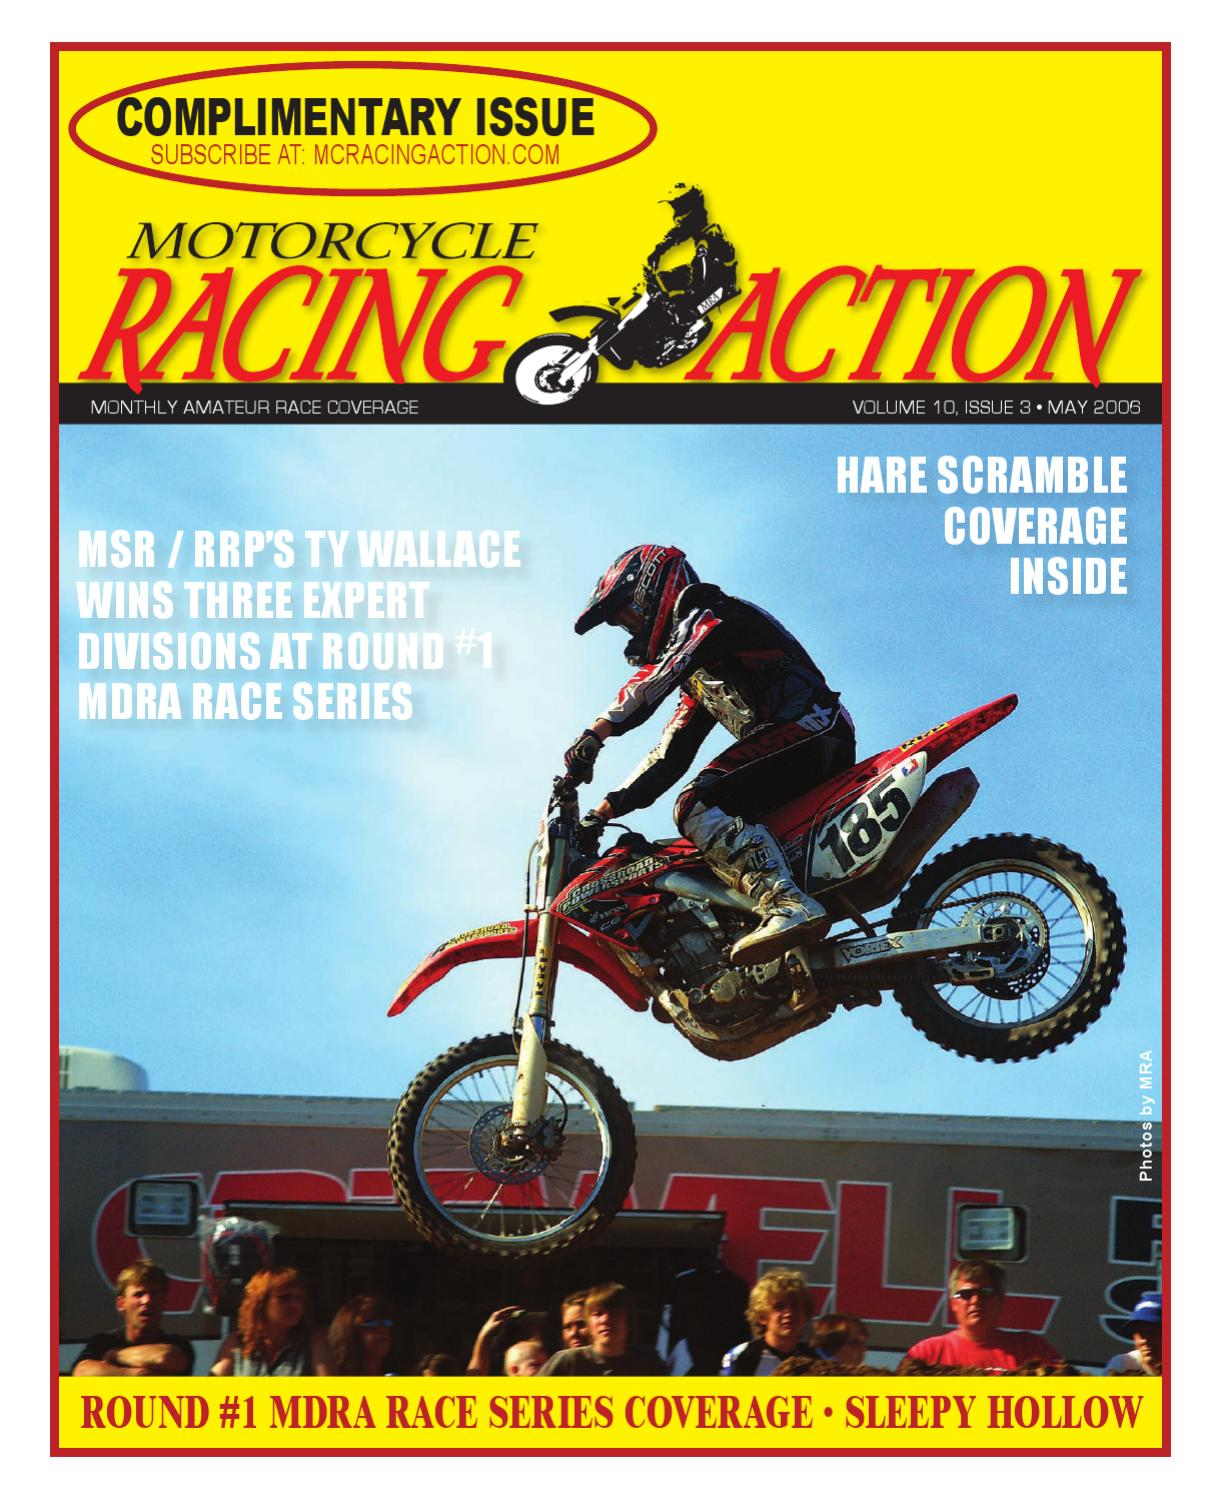 Acr Langenbach Mra May 2006 By Motorcycle Racing Action Issuu